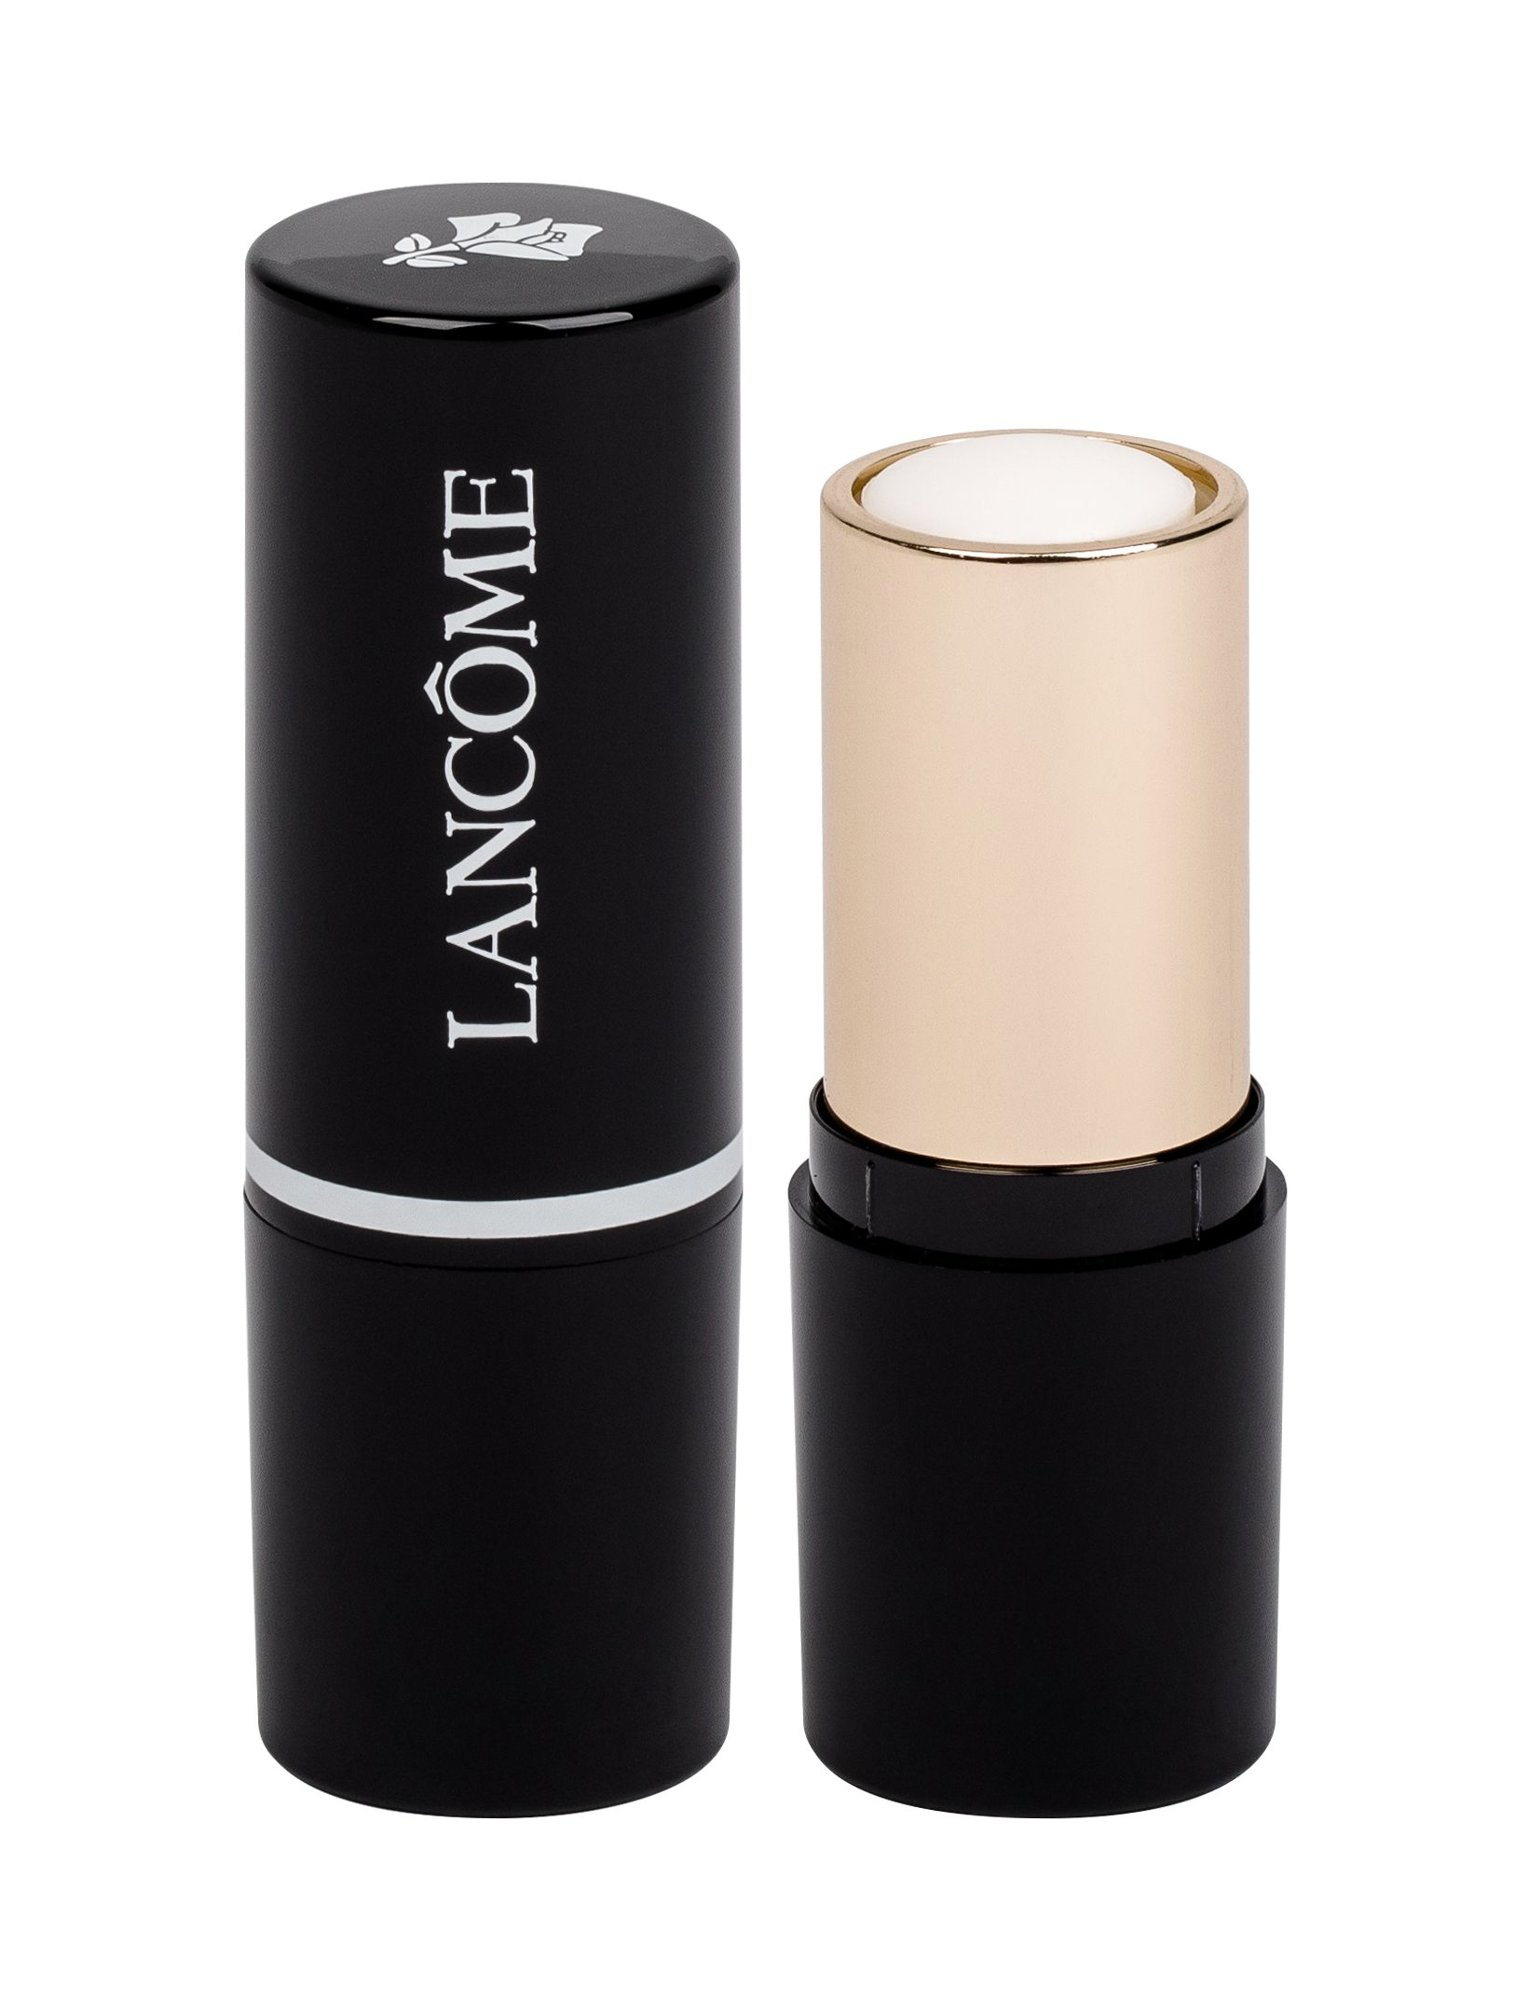 Lancôme Teint Idole Ultra Wear Makeup 9ml Universal